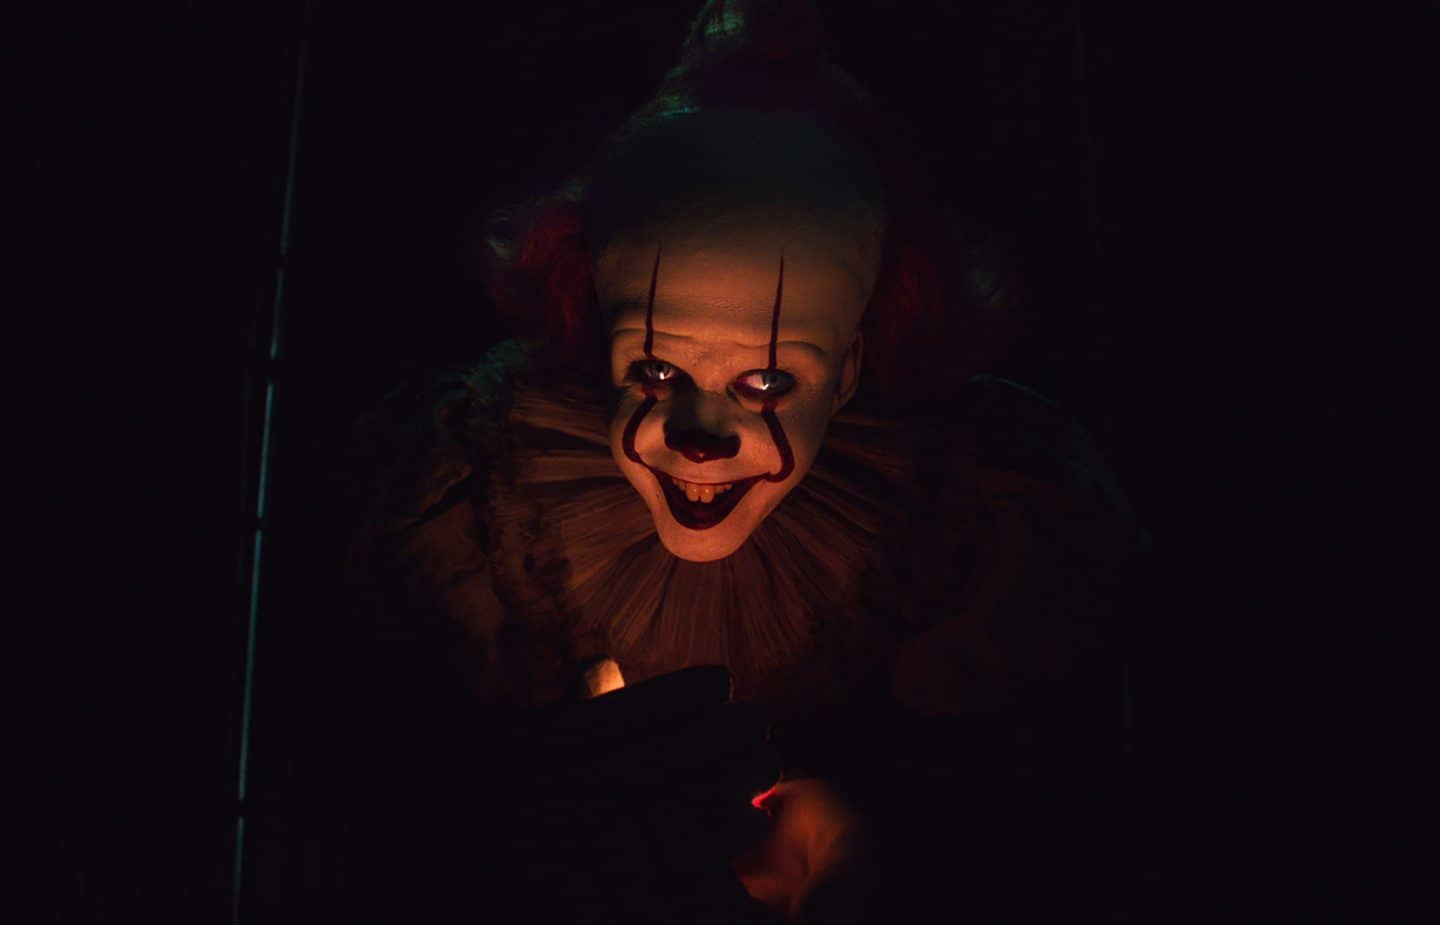 The Clown From 'IT' Is Bringing A Freaky Festival To Hollywood Next Month